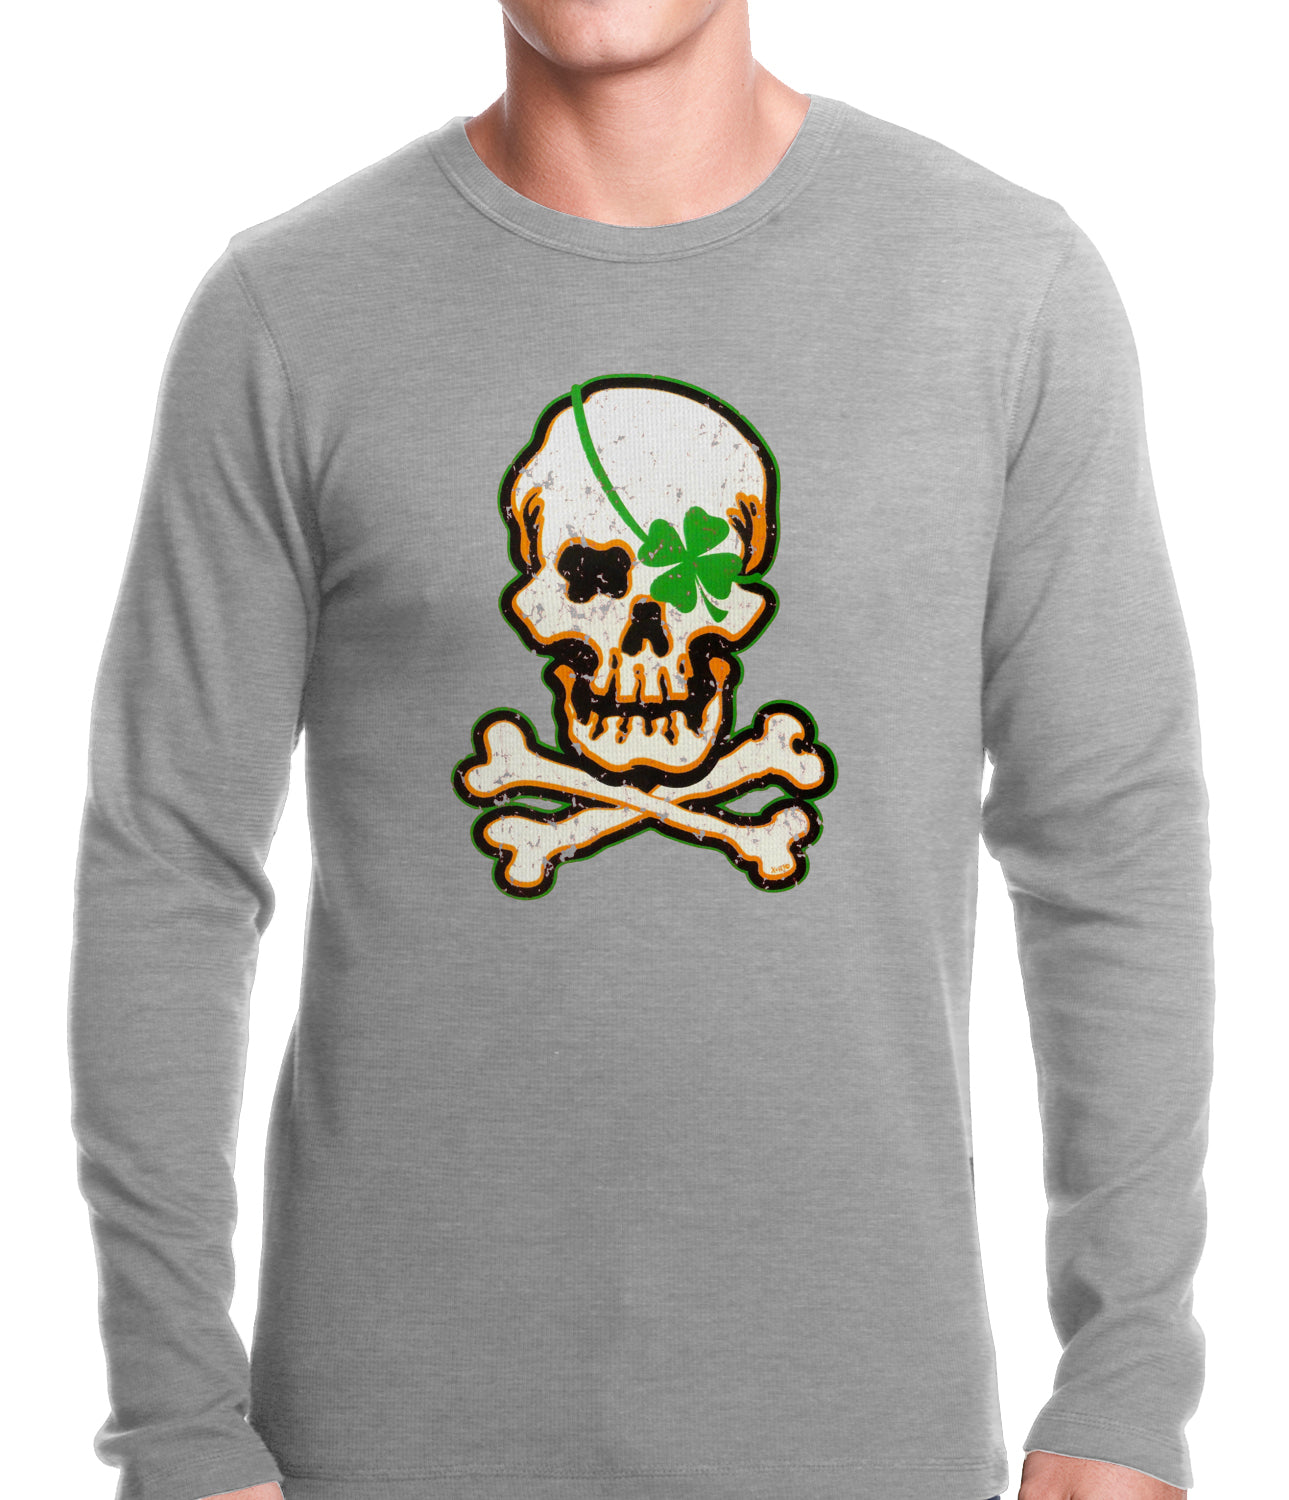 Irish Shamrock Skull and Crossbones Thermal Shirt